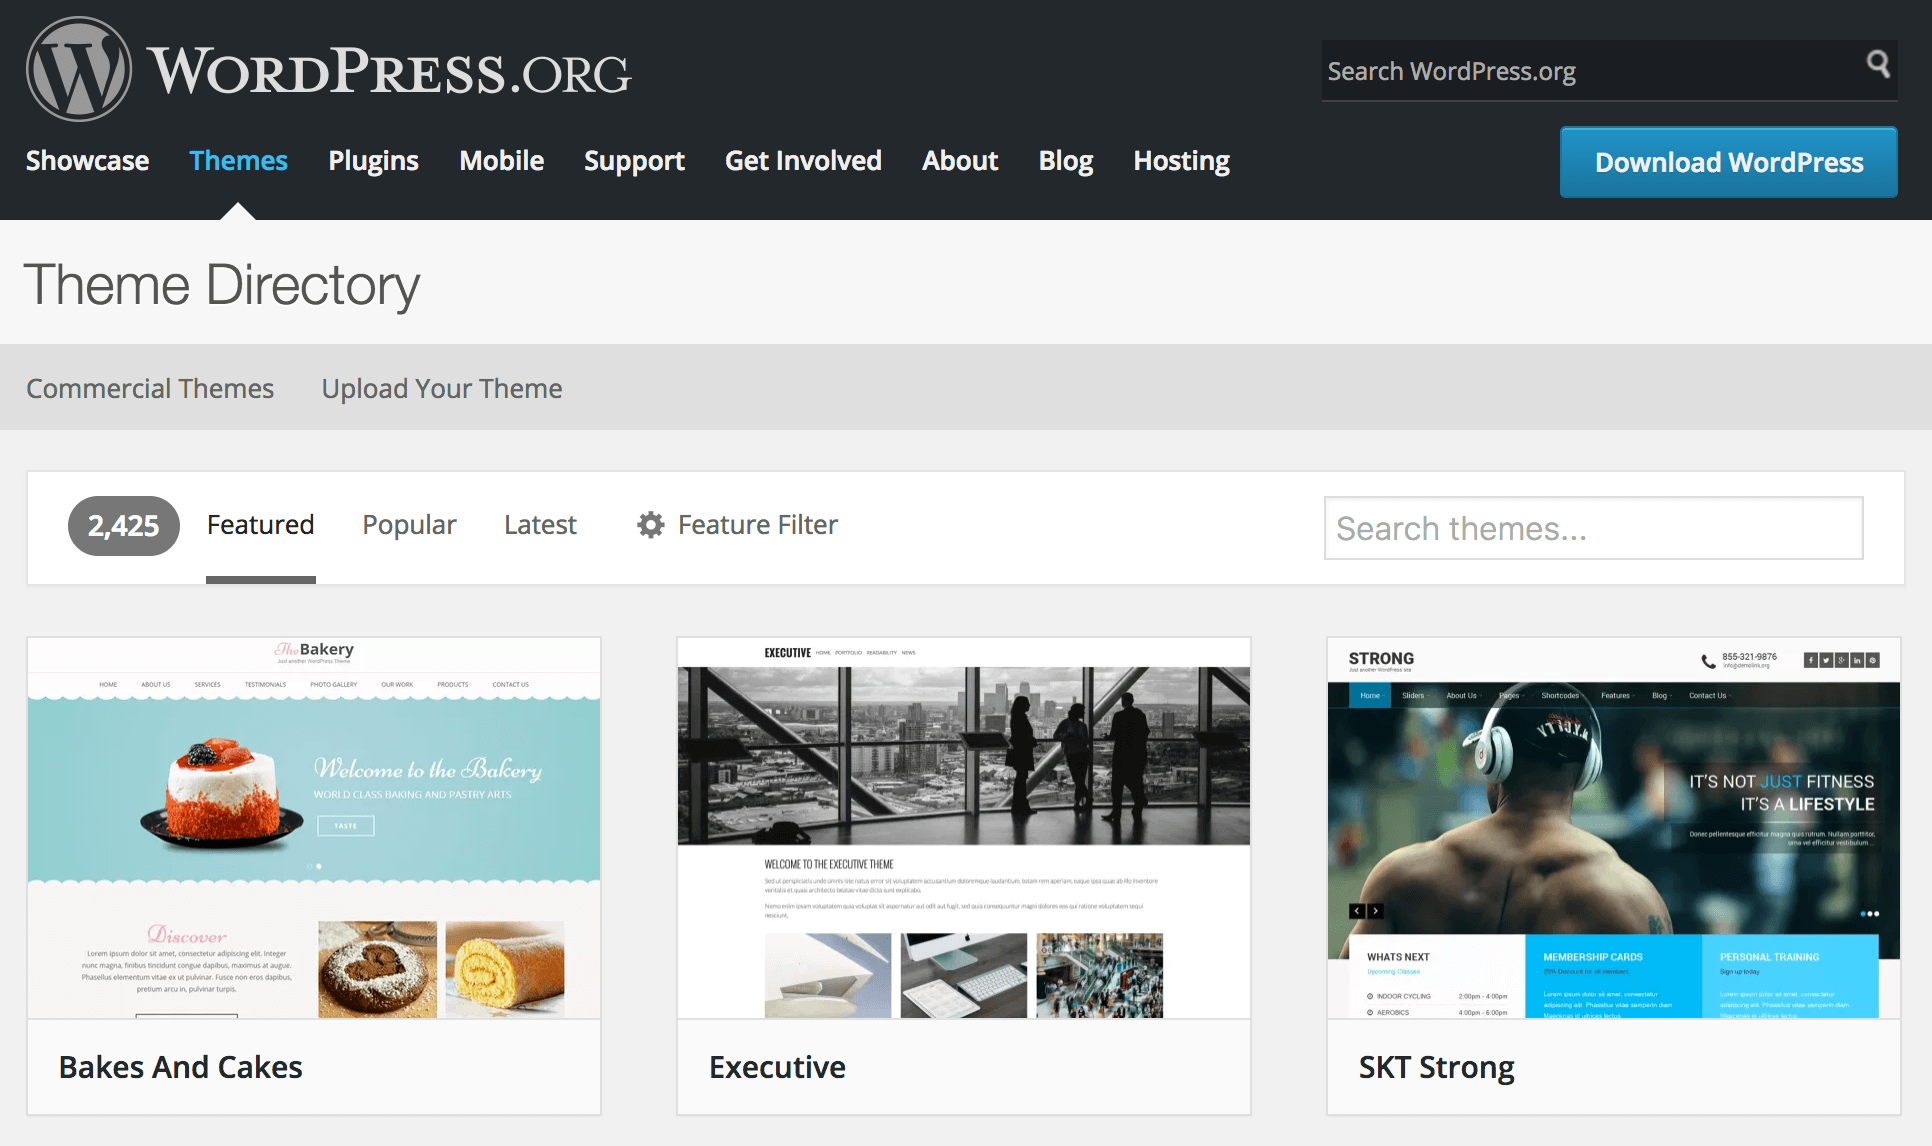 The WordPress.org Theme Directory.